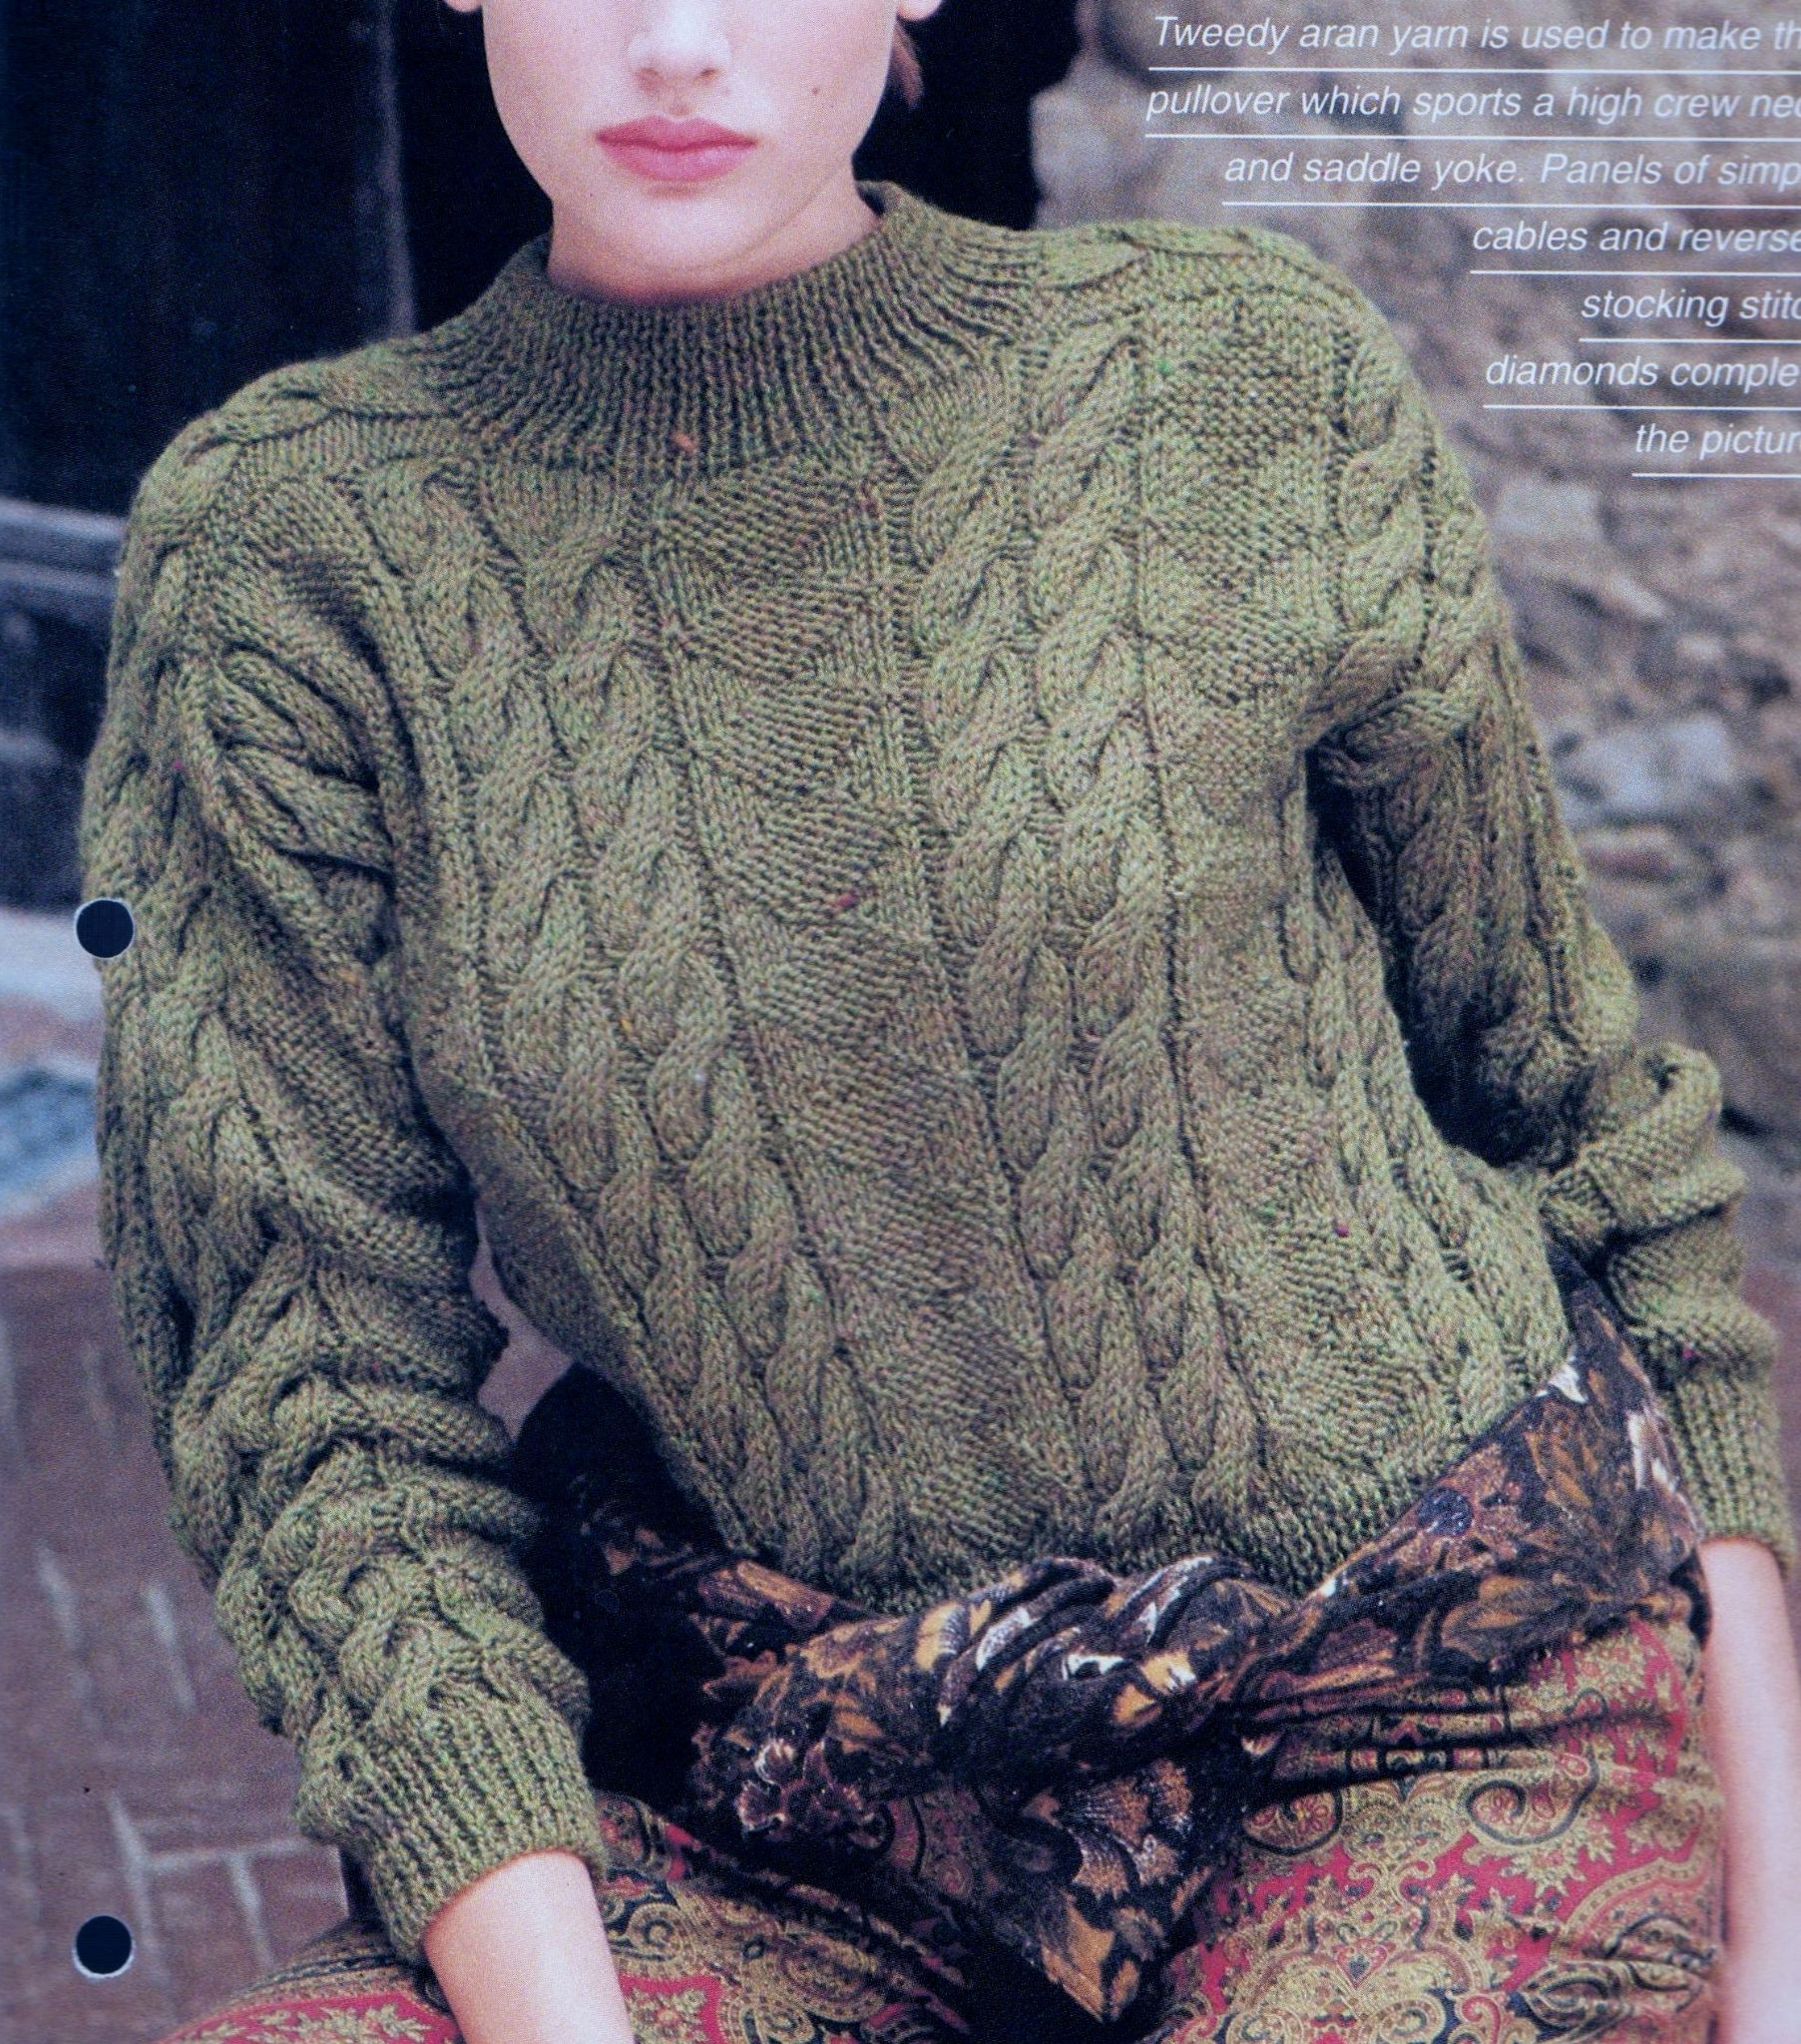 Yoke Knitting Pattern Pdf Digital Download Vintage Knitting Pattern Ladies Aran Sweater With Saddle Yoke And Cable Panels Bust 76 101 Cm